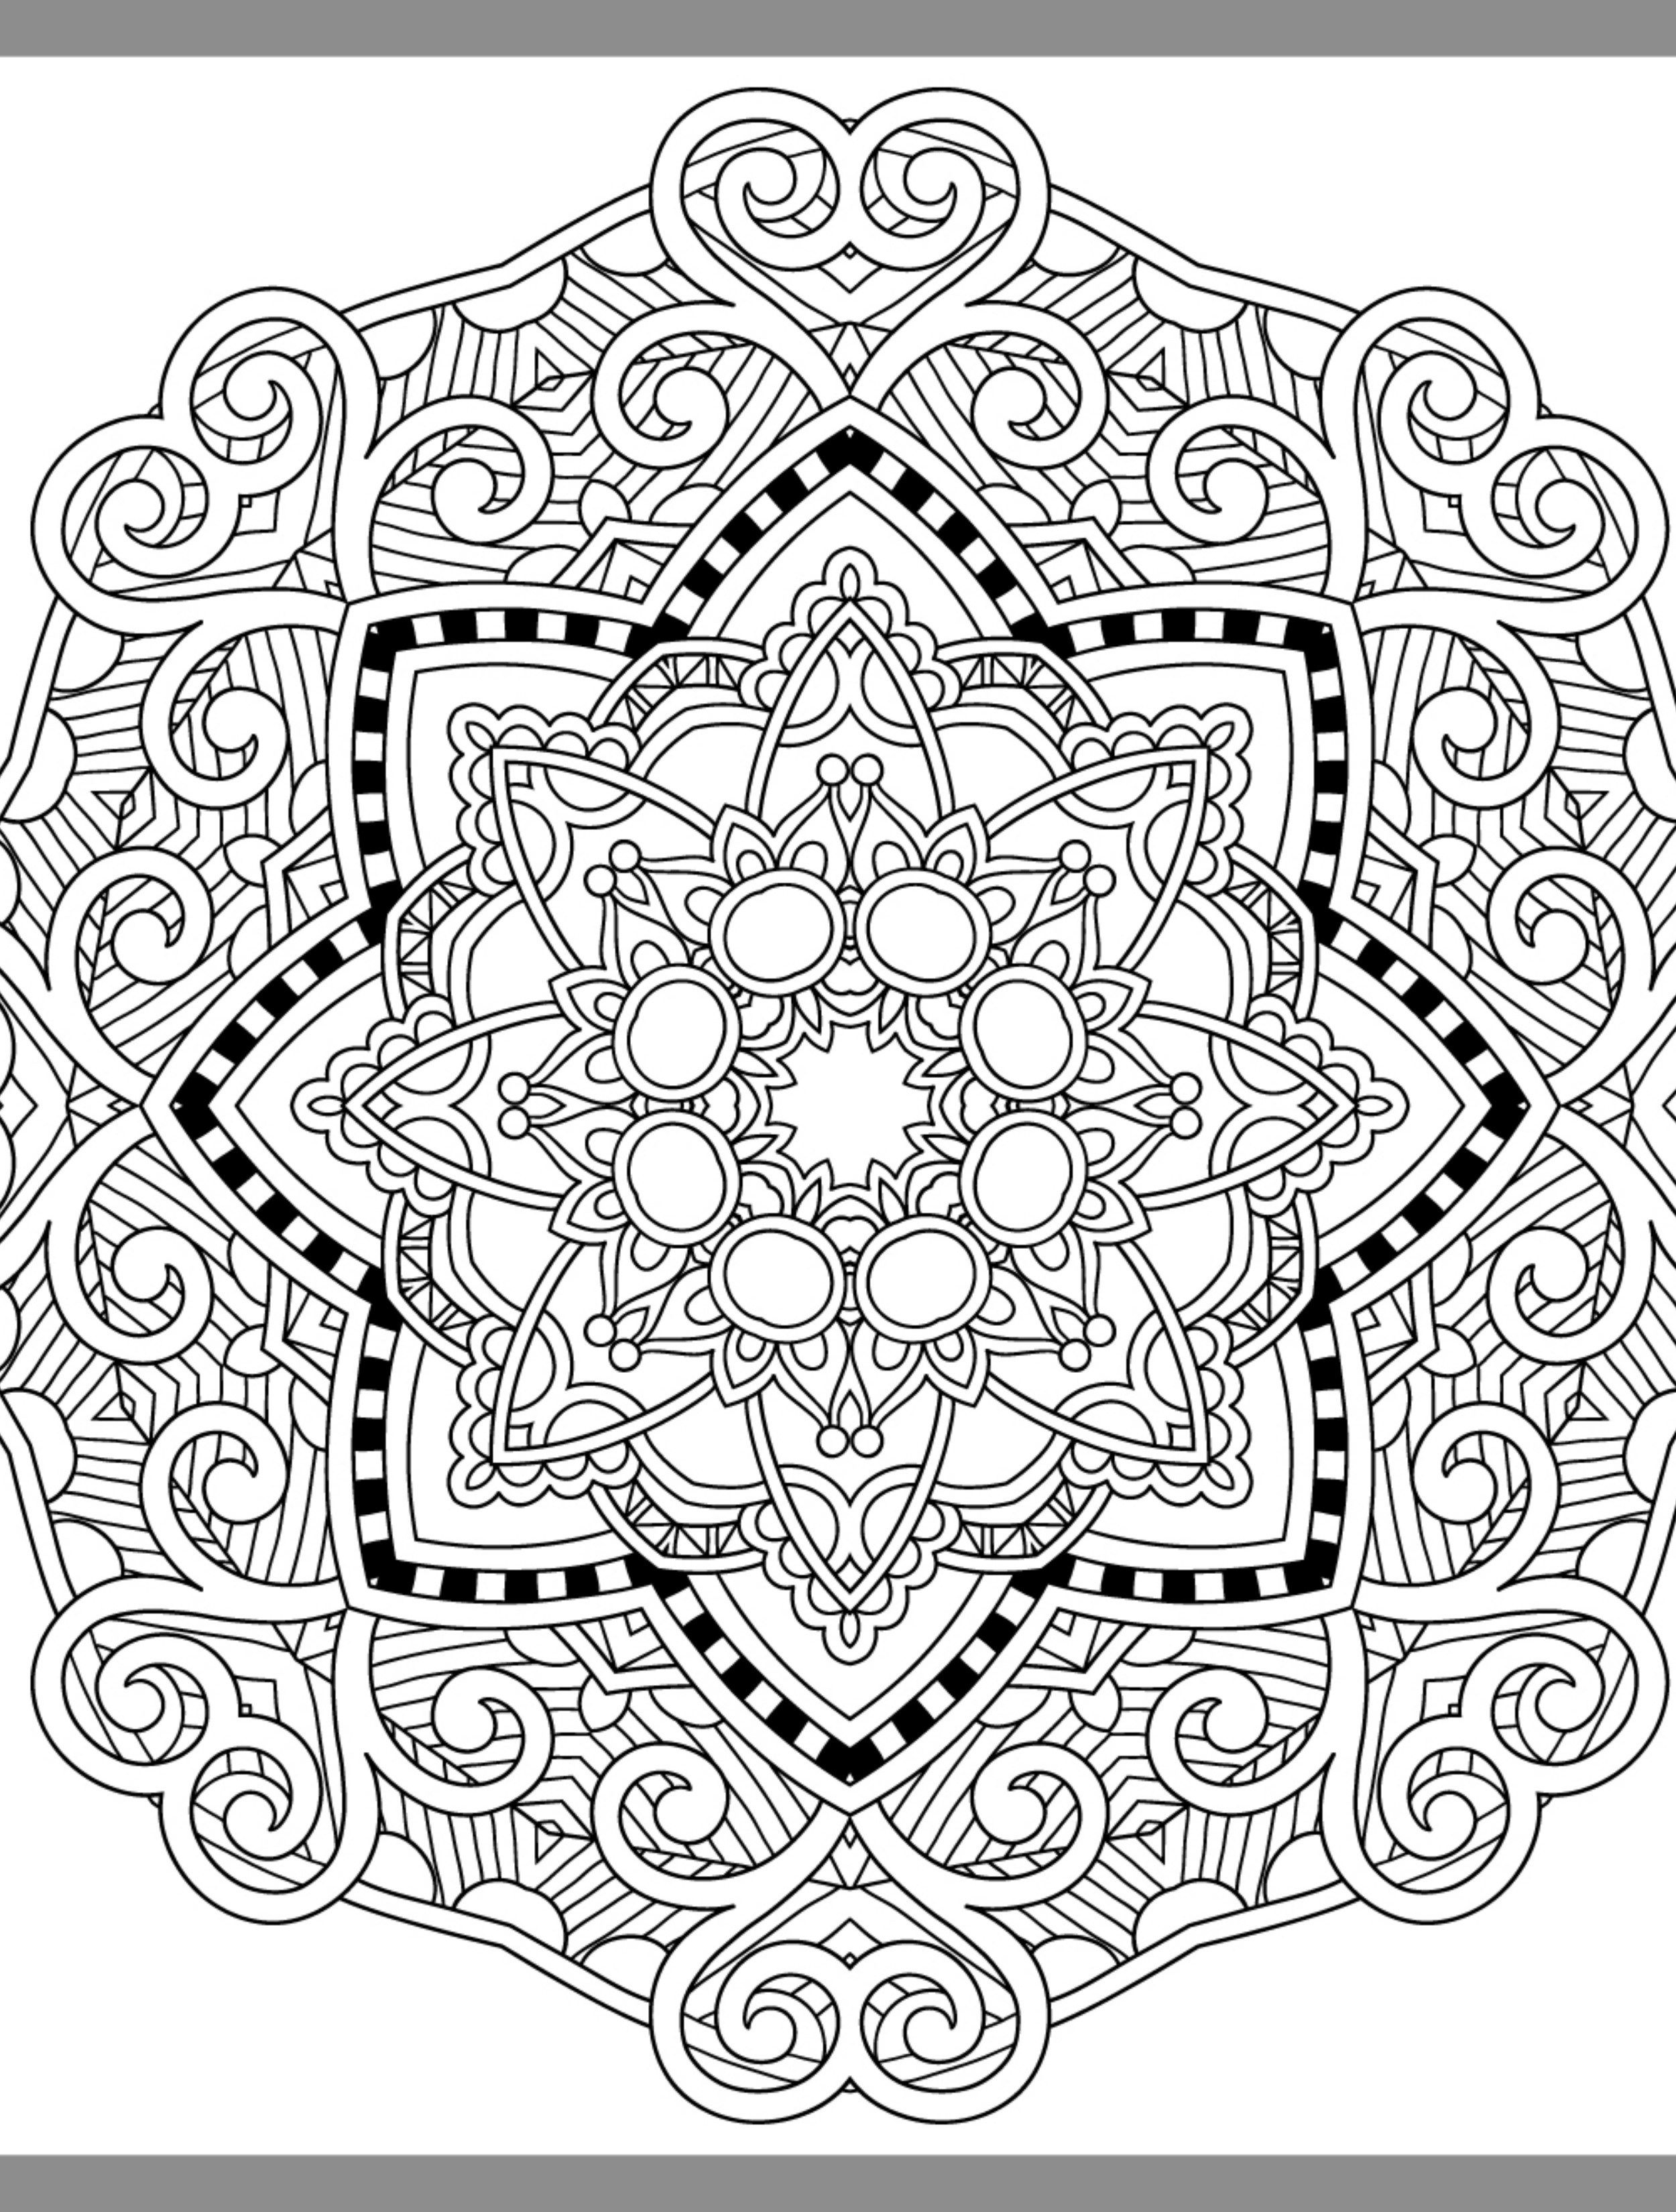 24 More Free Printable Adult Coloring Pages | mandales | Pinterest ...